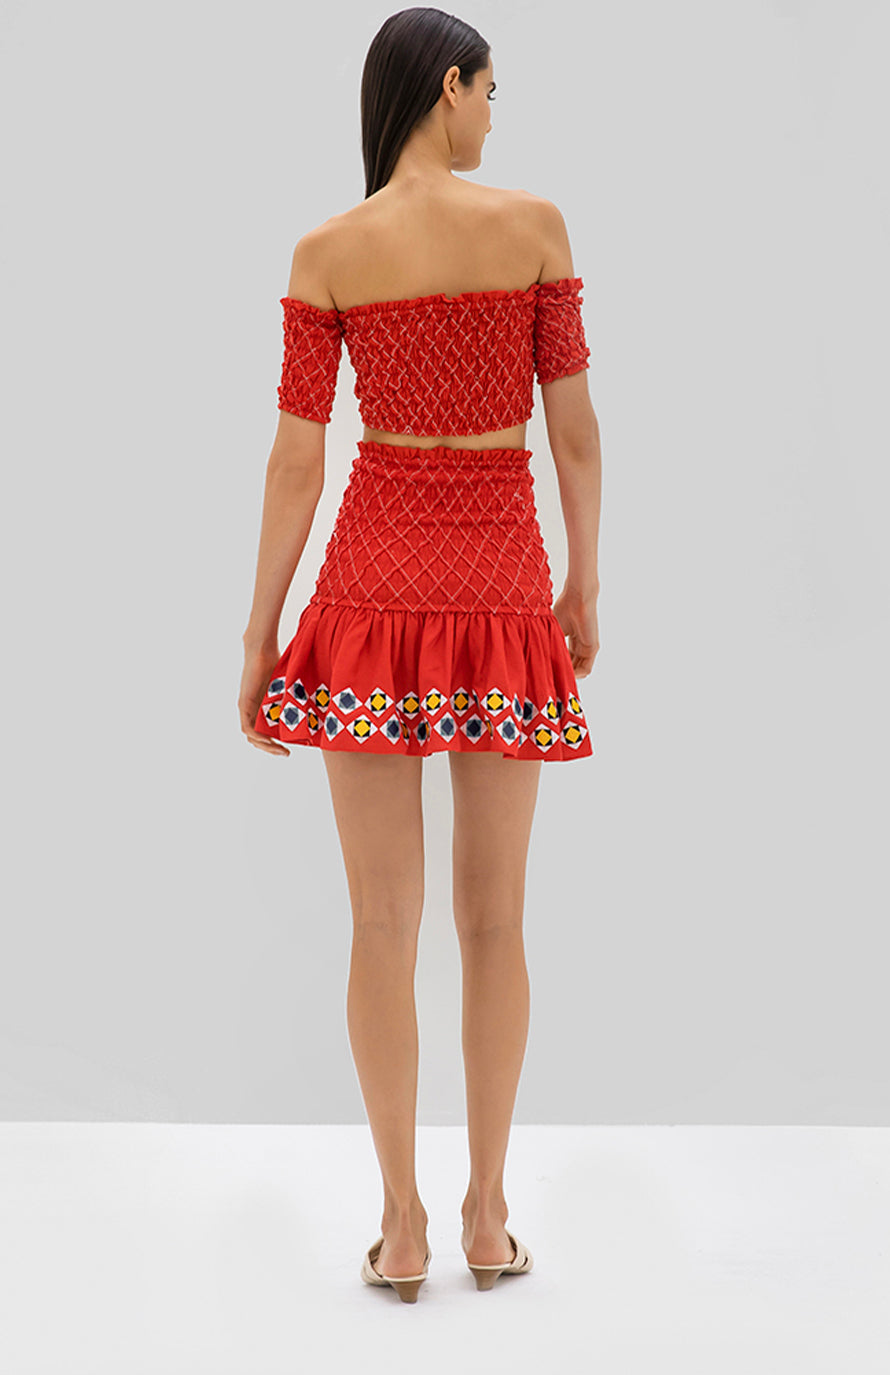 Alexis Ghada top and Solomon Skirt red geometric embroidery - Rear View